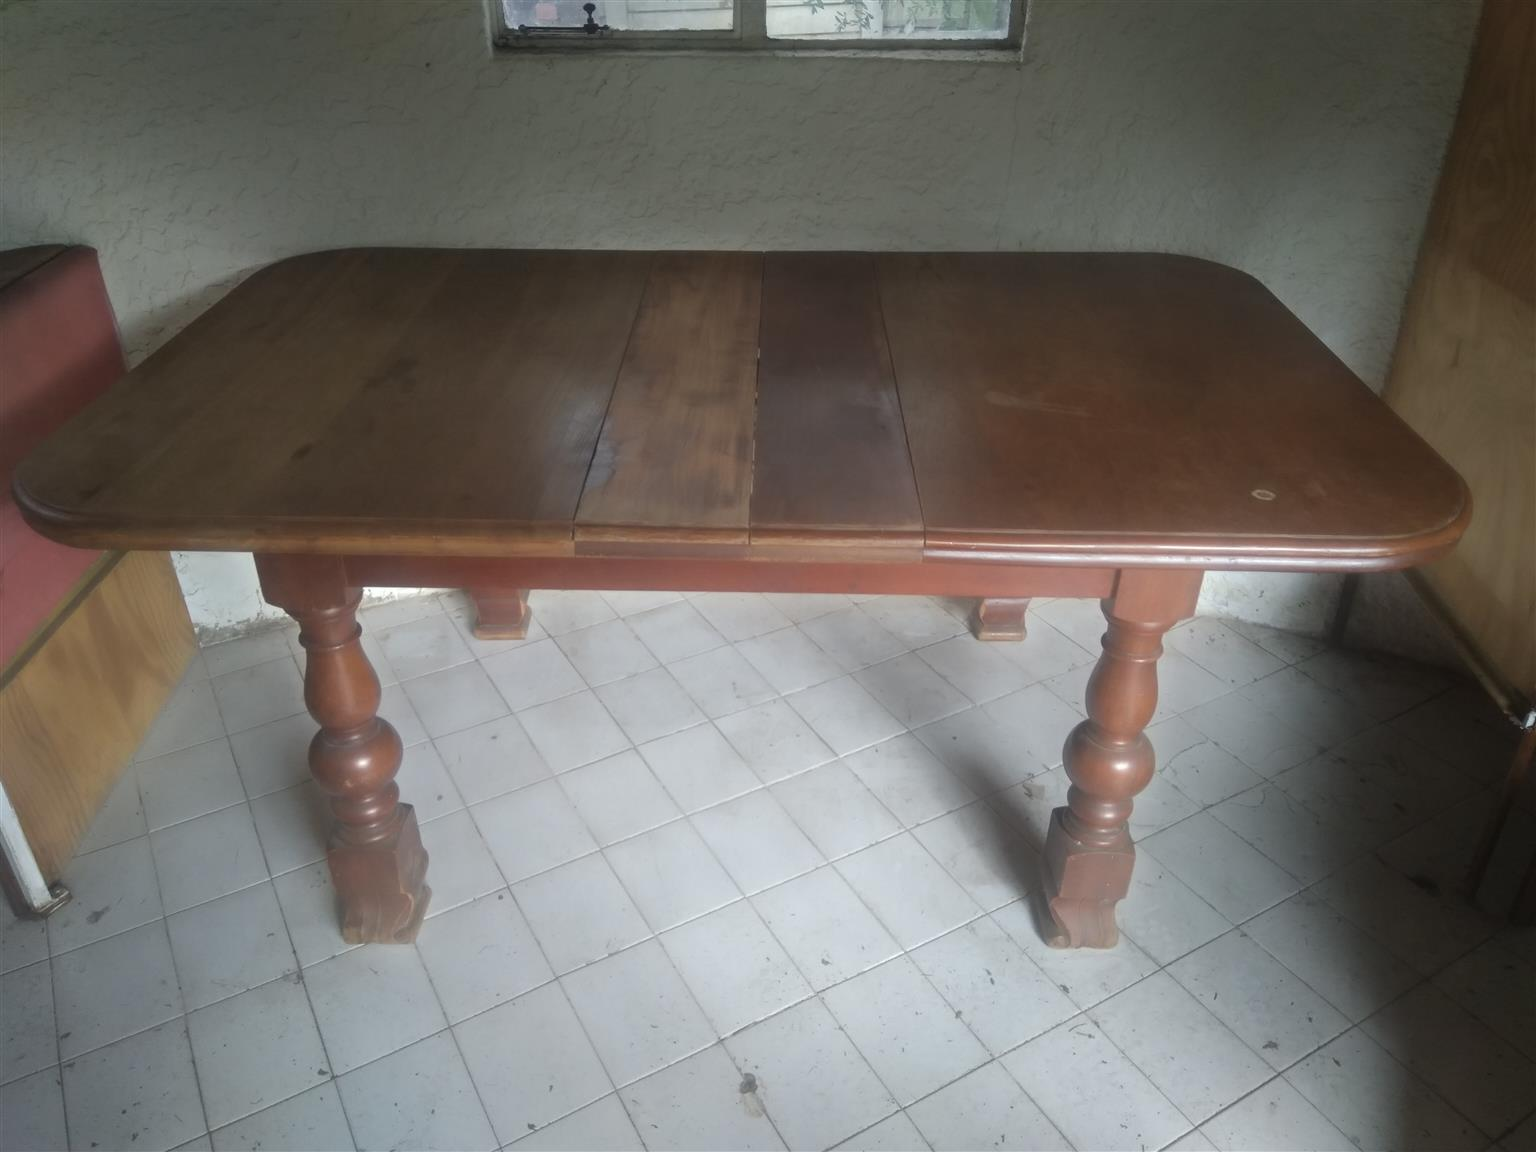 Rhodesian teak. About 98 years old. Busy restoring